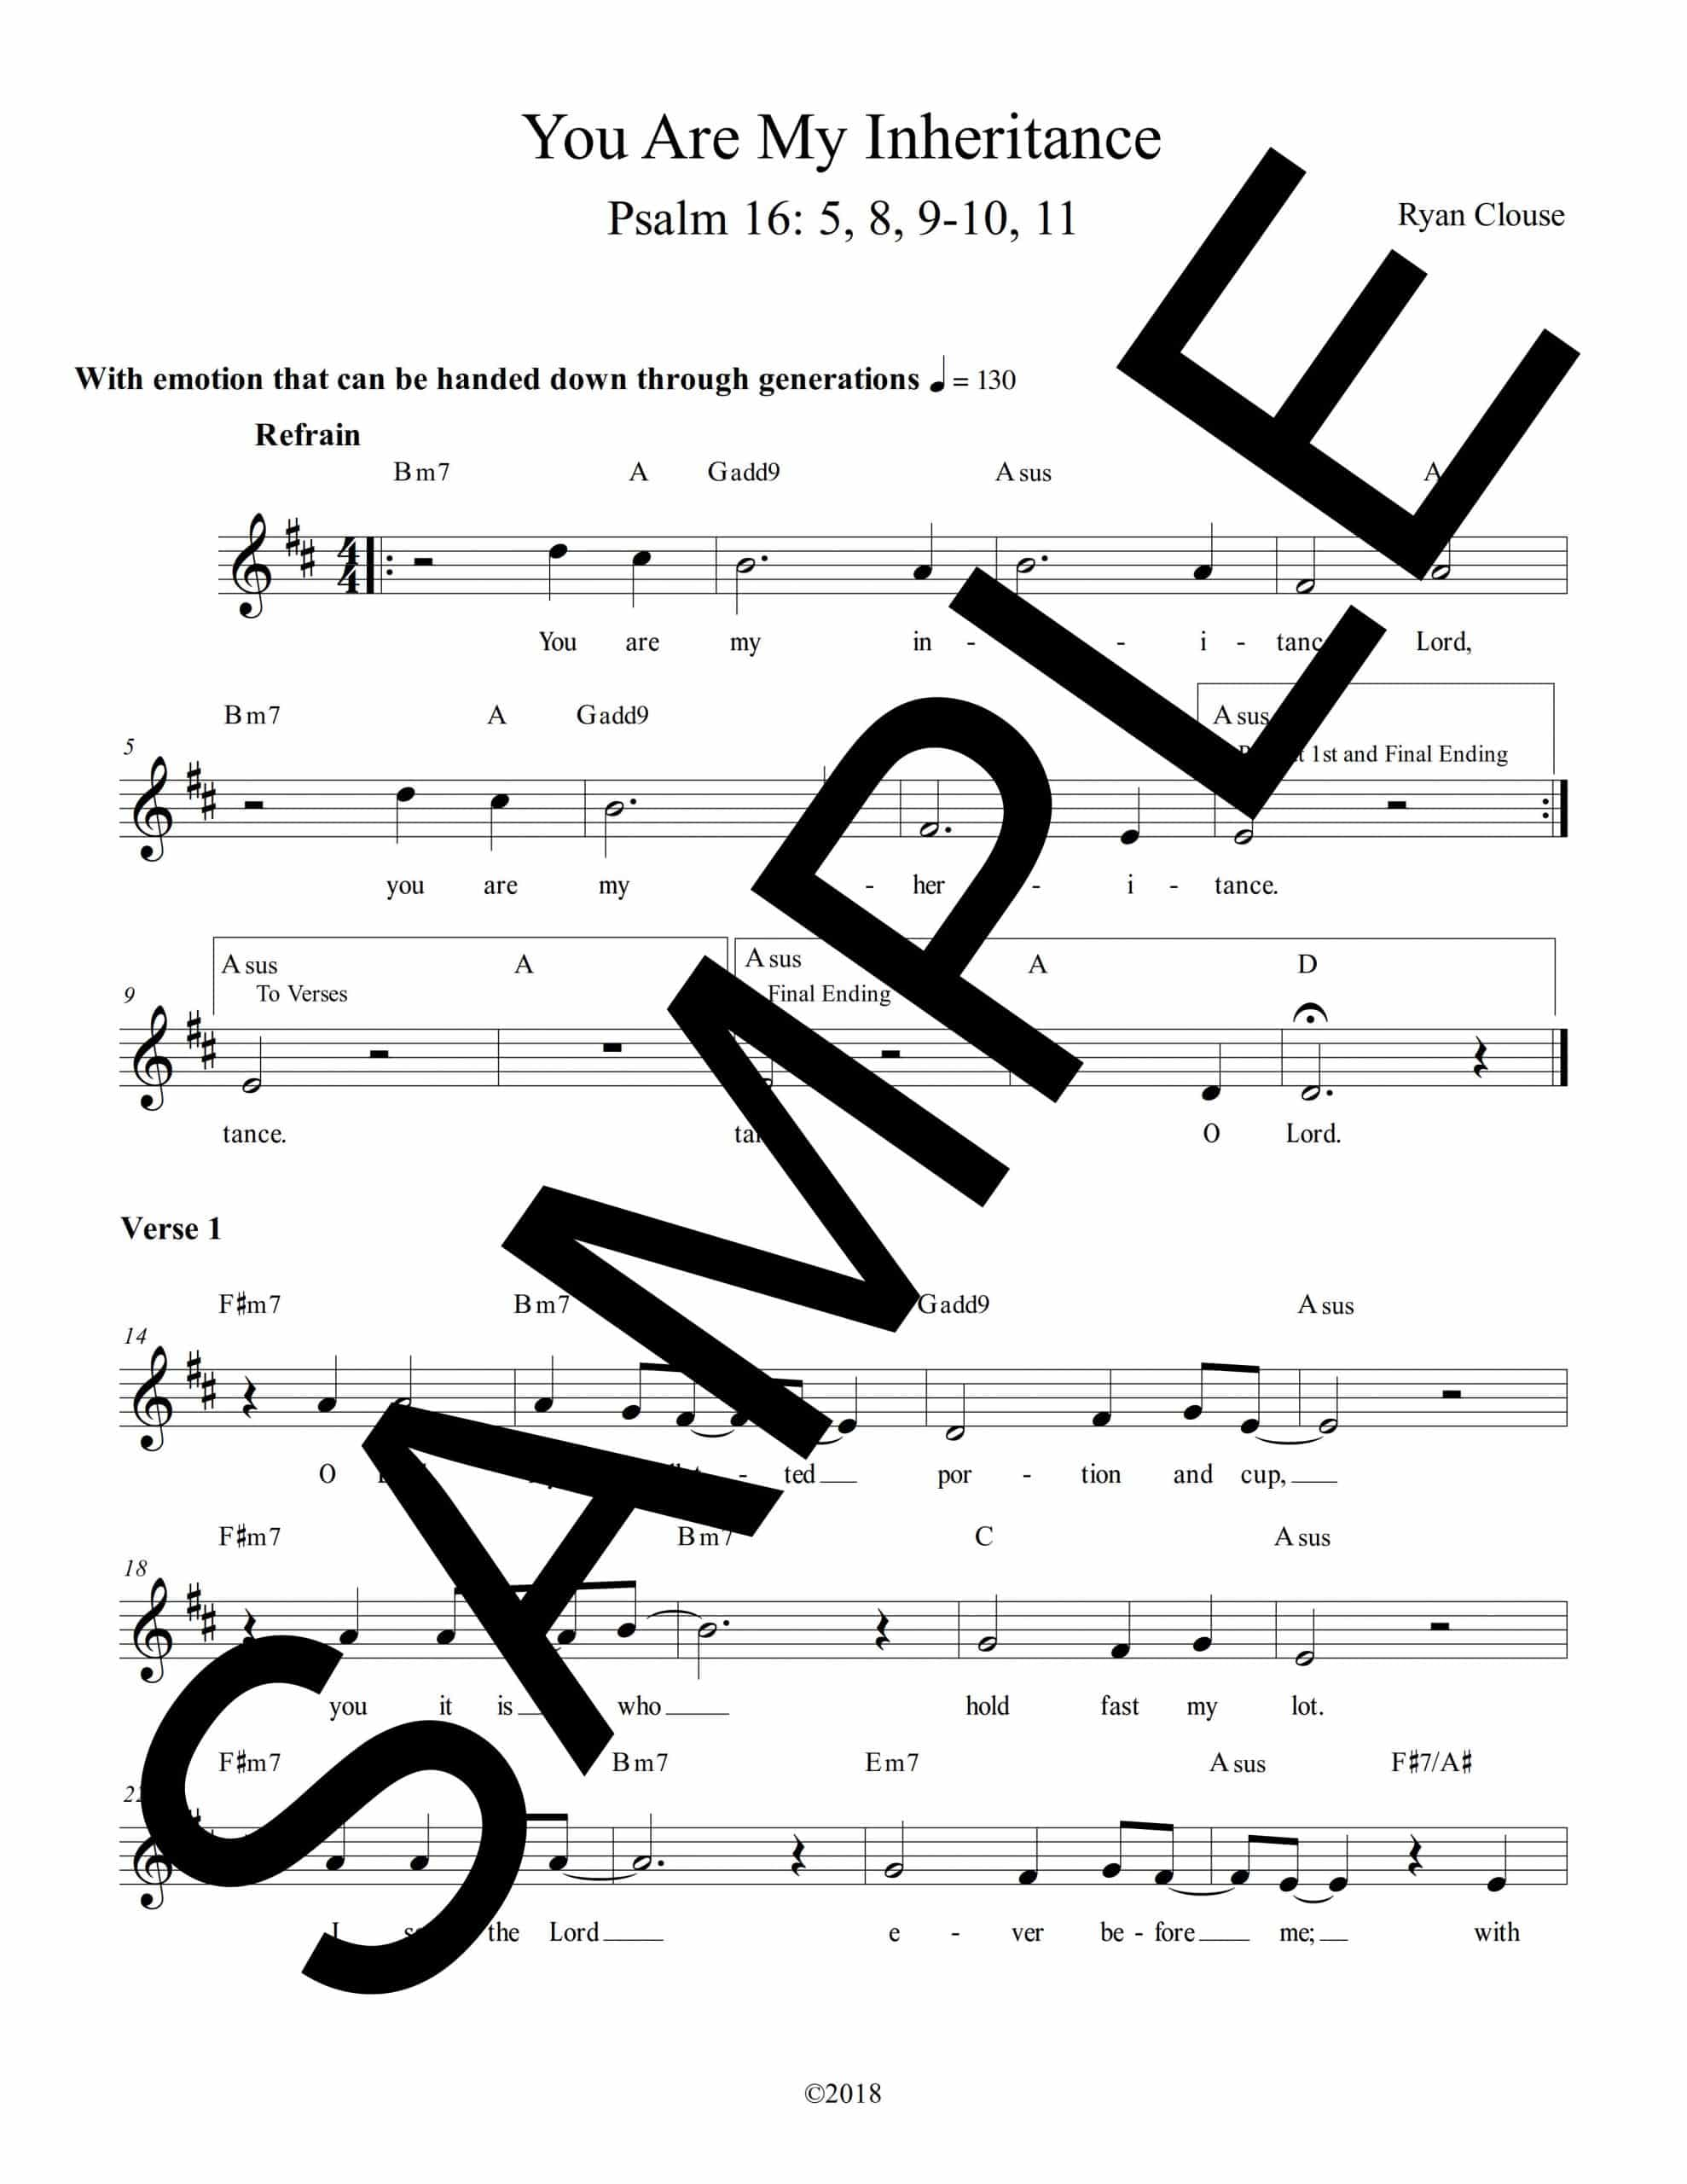 Psalm 16 You Are My Inheritance Clouse Sample Lead Sheet scaled